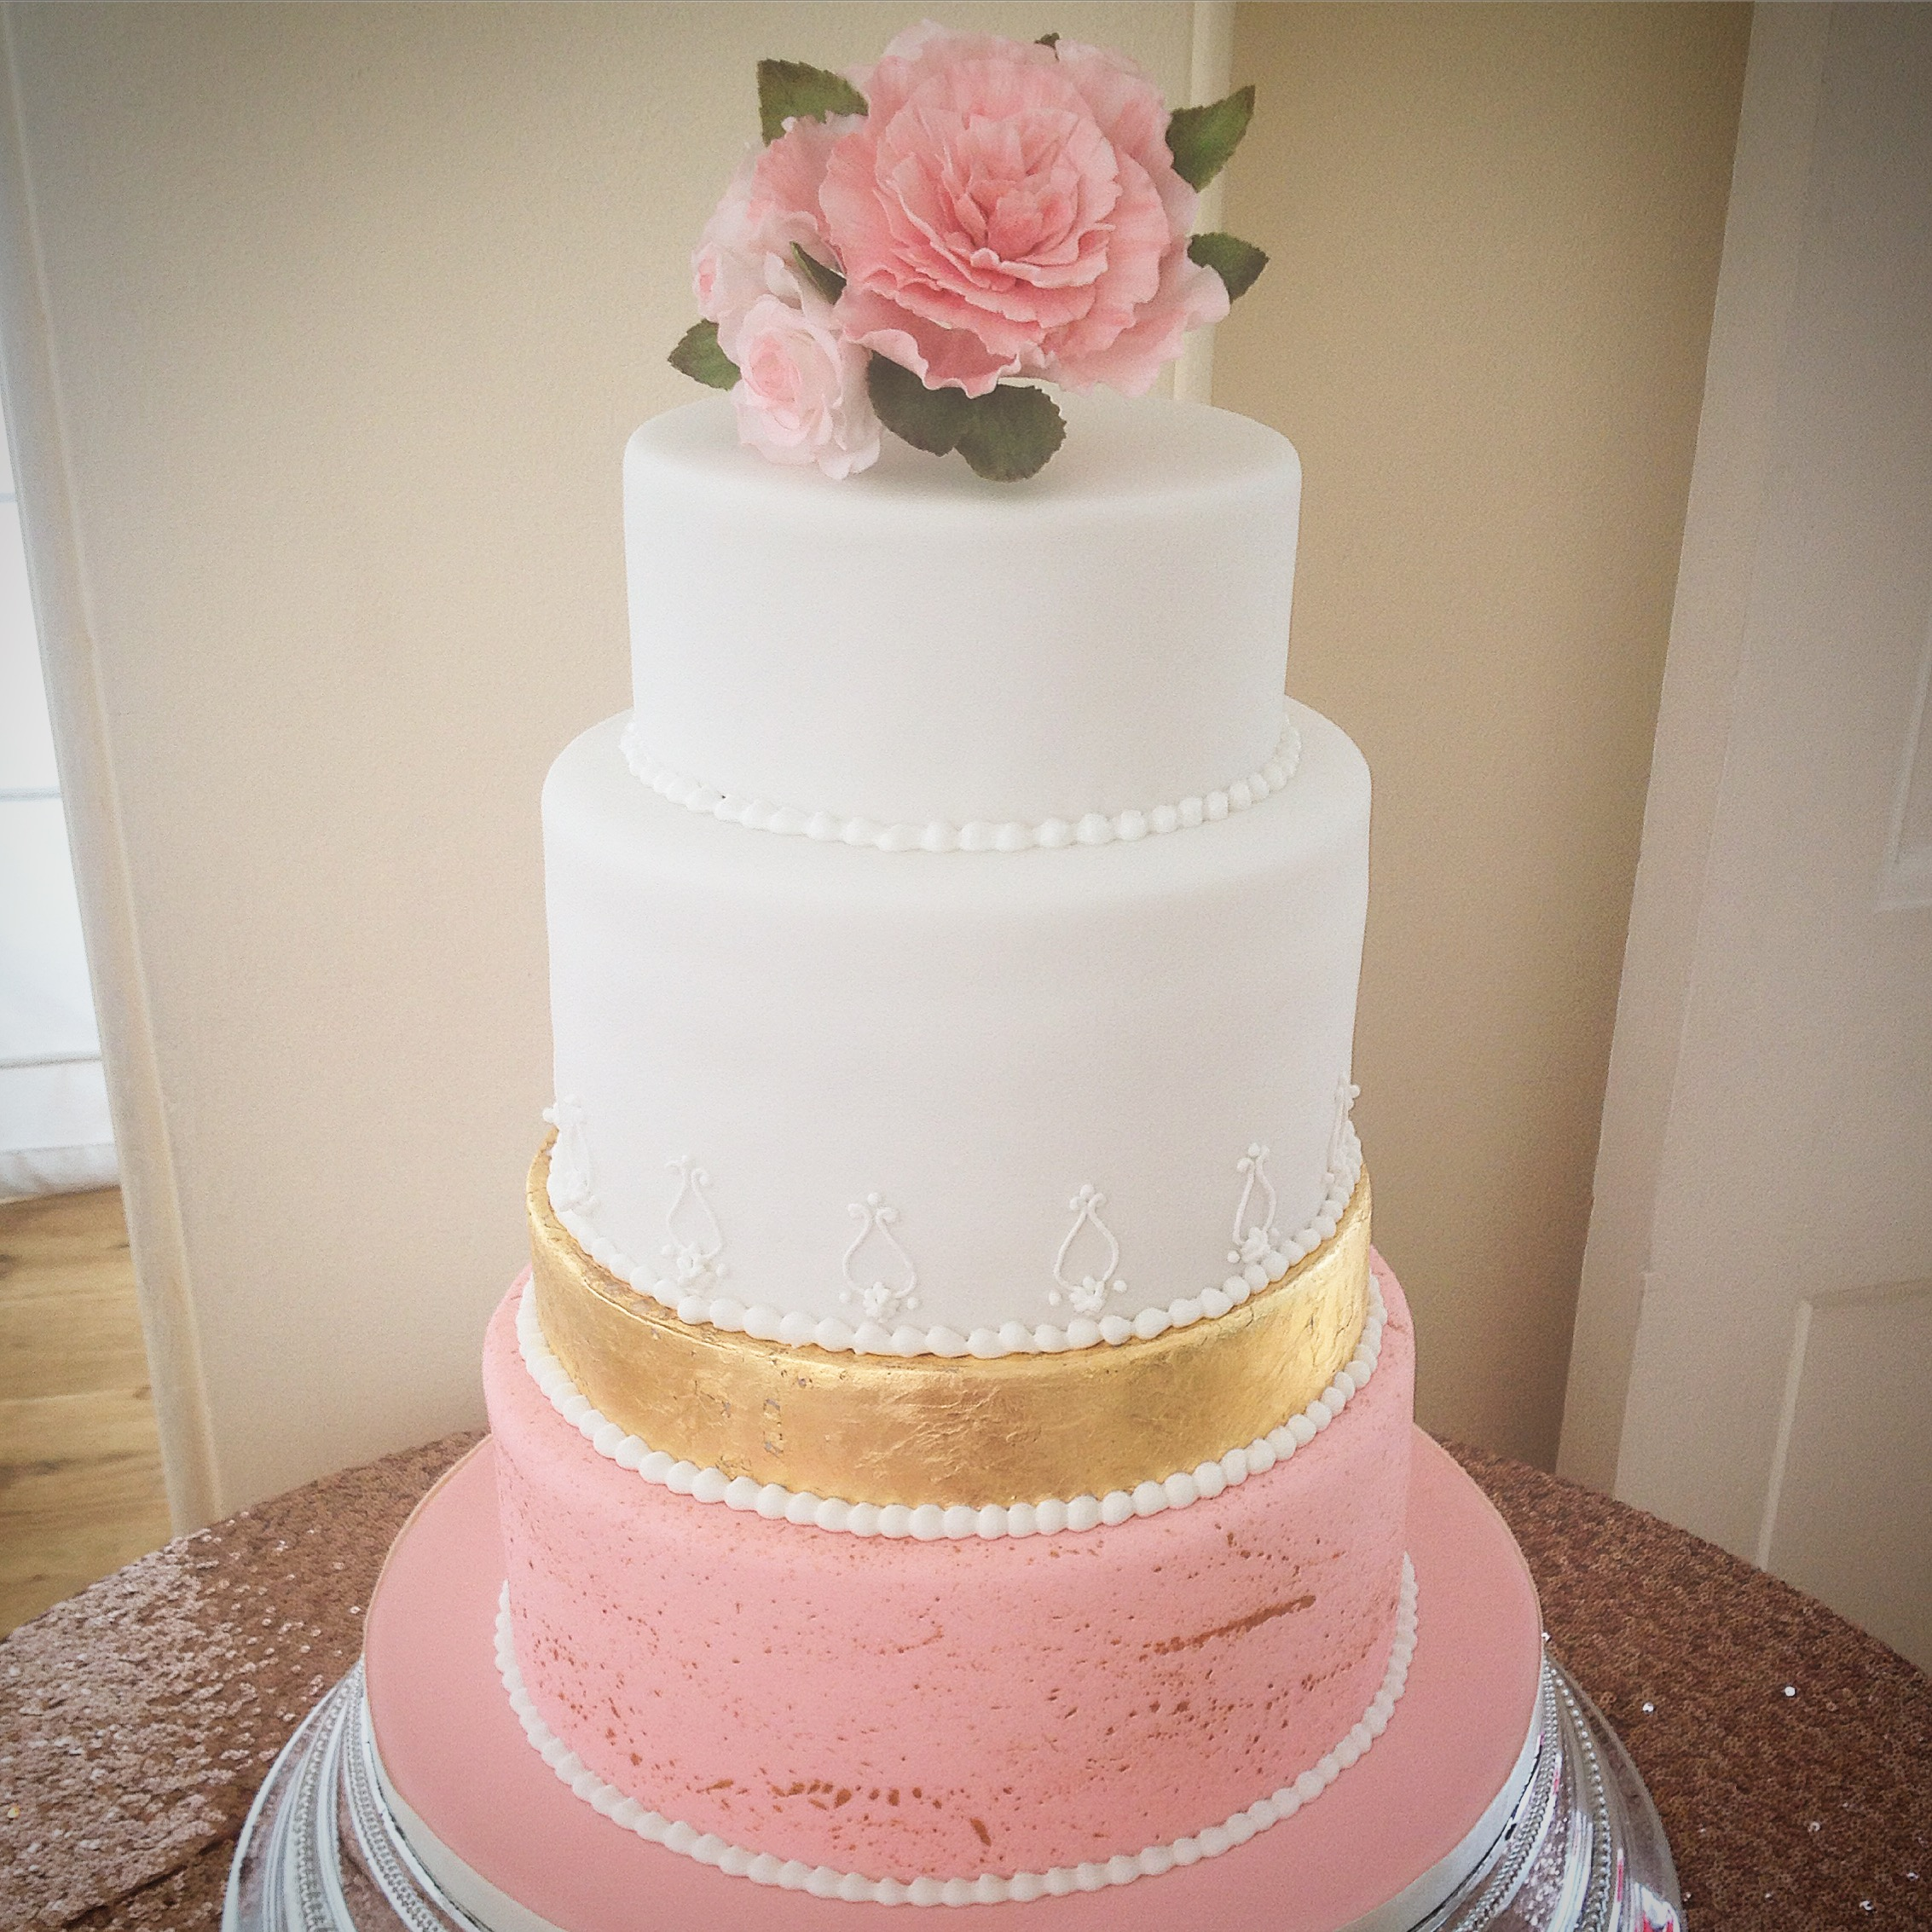 Blush & Gold wedding cake